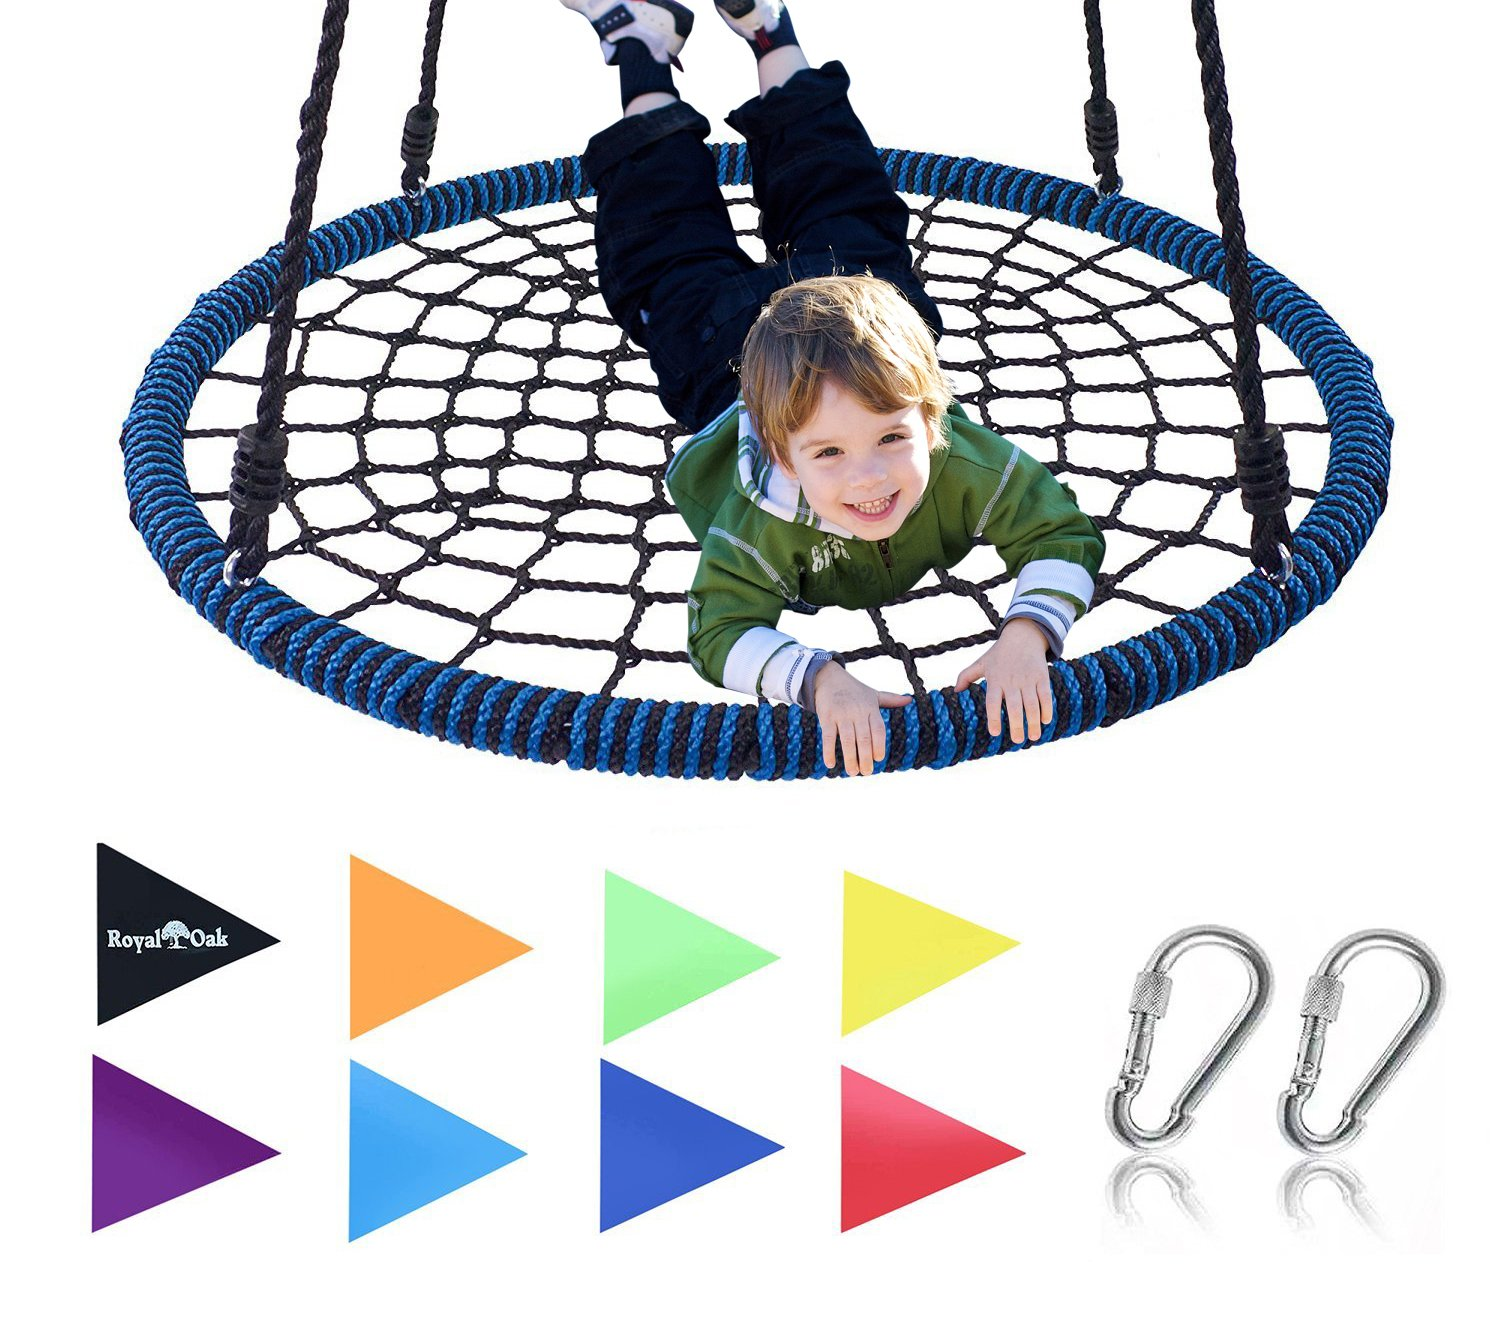 Giant 40'' Spider Web Tree Swing in Elite Blue, 600 lb Weight Capacity, Durable Steel Frame, Waterproof, Adjustable Ropes, Comes Assembled, Bonus Flag Set and 2 Carabiners, Non-Stop Fun for Kids!